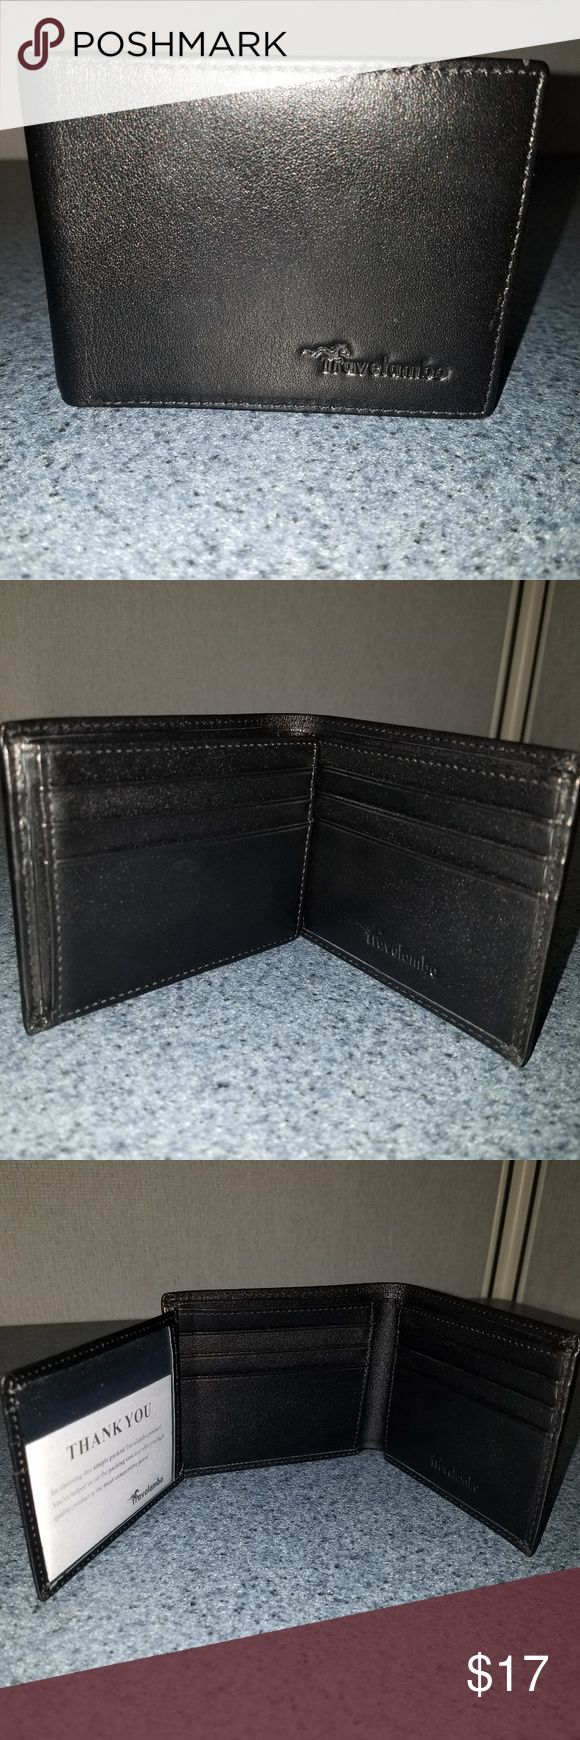 Travelambo Genuine Leather RFID Blocking Wallets M 4.6 X 3.7 in. WHAT IS RFID? - RFID is the use of radio waves between devices to transfer data. Credit cards, payment cards, and driver's licenses all use RFID WHY USE A RFID WALLET? - Personal information on these cards is vulnerable to theft by pickpockets using RFID scanners unless you have the special linings provided by a RFID blocking wallet STAY PROTECTED -  RFID wallets are lined with enhanced RFID blocking layer to offer complete…